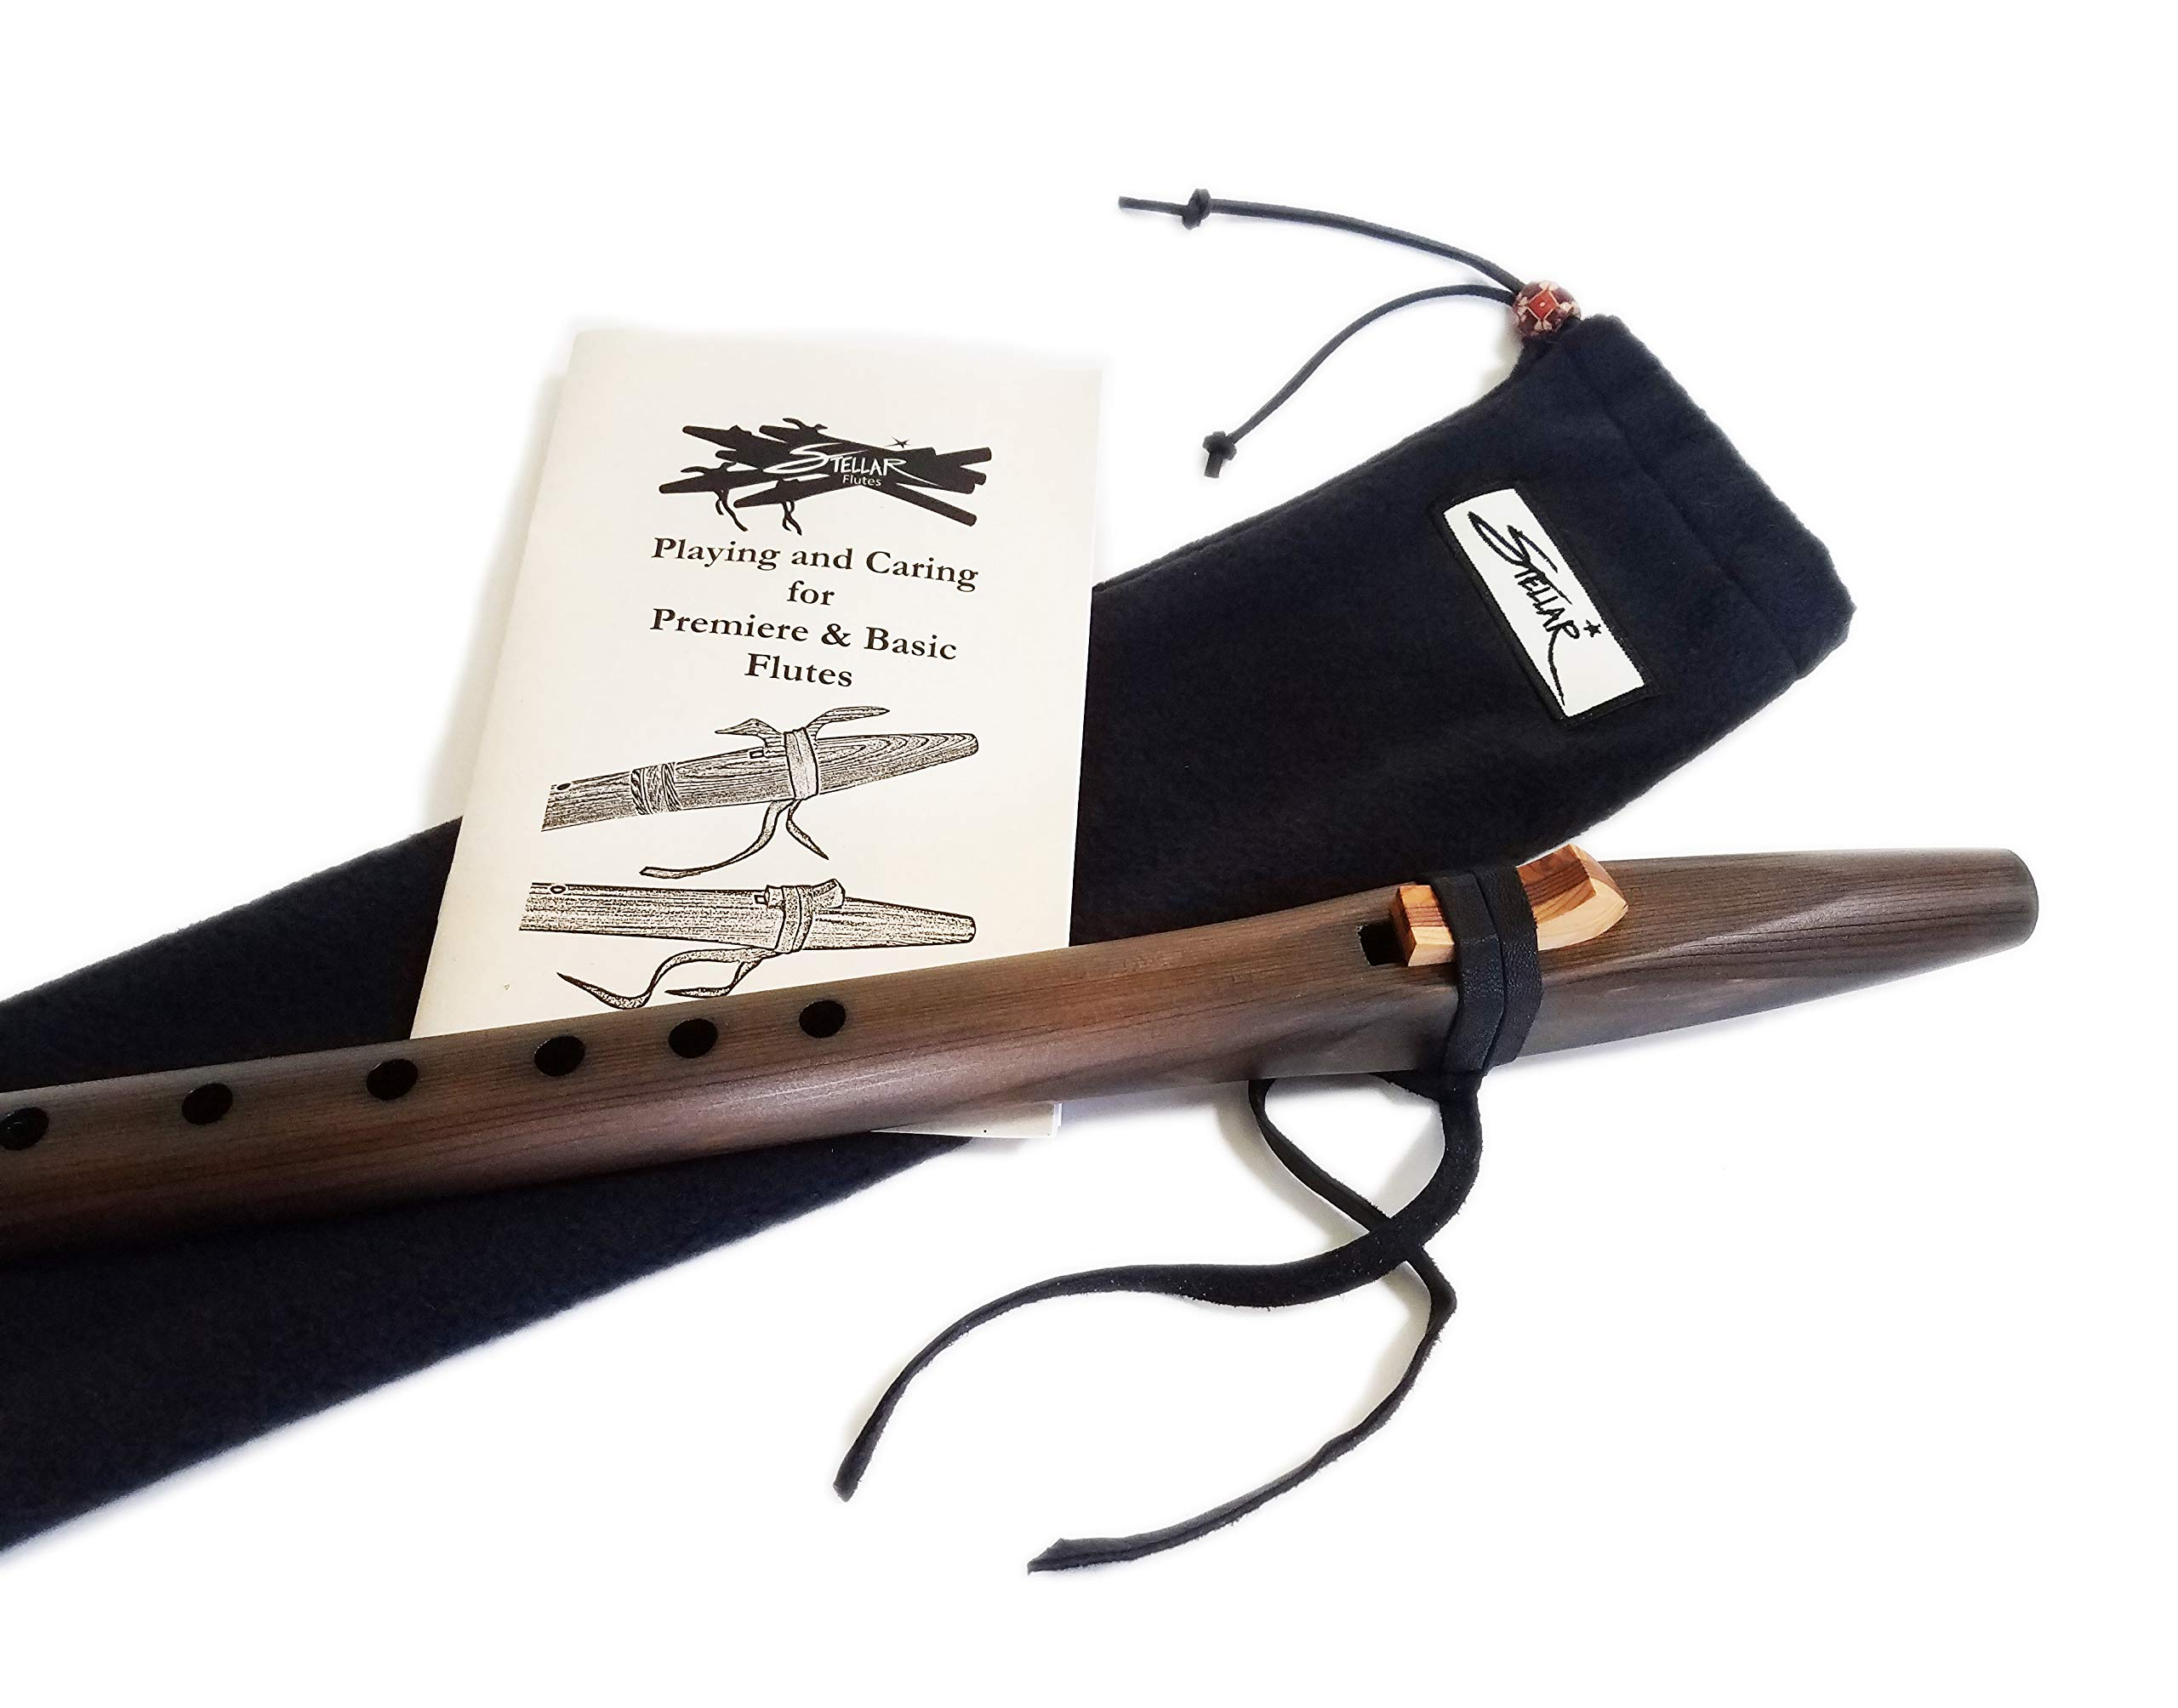 Stellar Basic Flute Key of G - Dark Stained Cedar Native American Style Flute with Carrying Case by Stellar Flutes